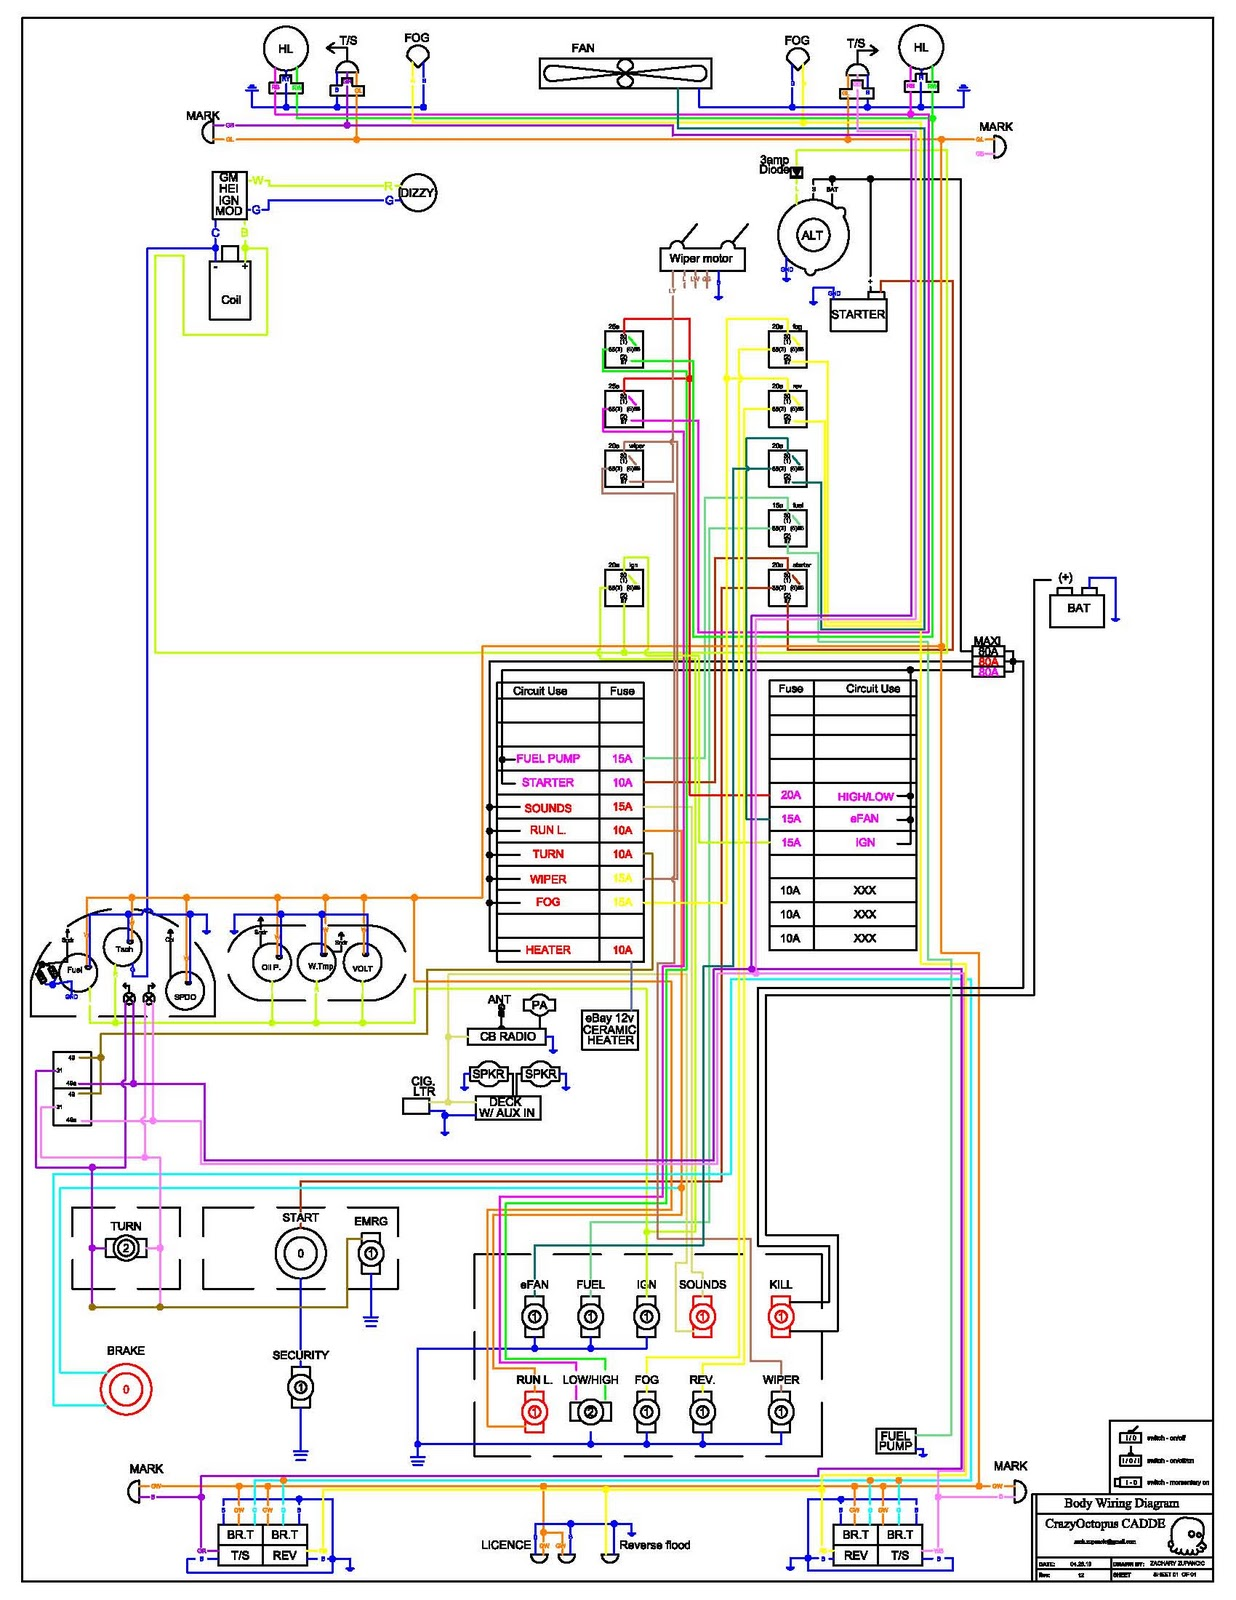 240z+wiring+r12 datsun 240z wiring diagram 71 240z wiring diagram \u2022 free wiring Fiero 350 Swap at bayanpartner.co